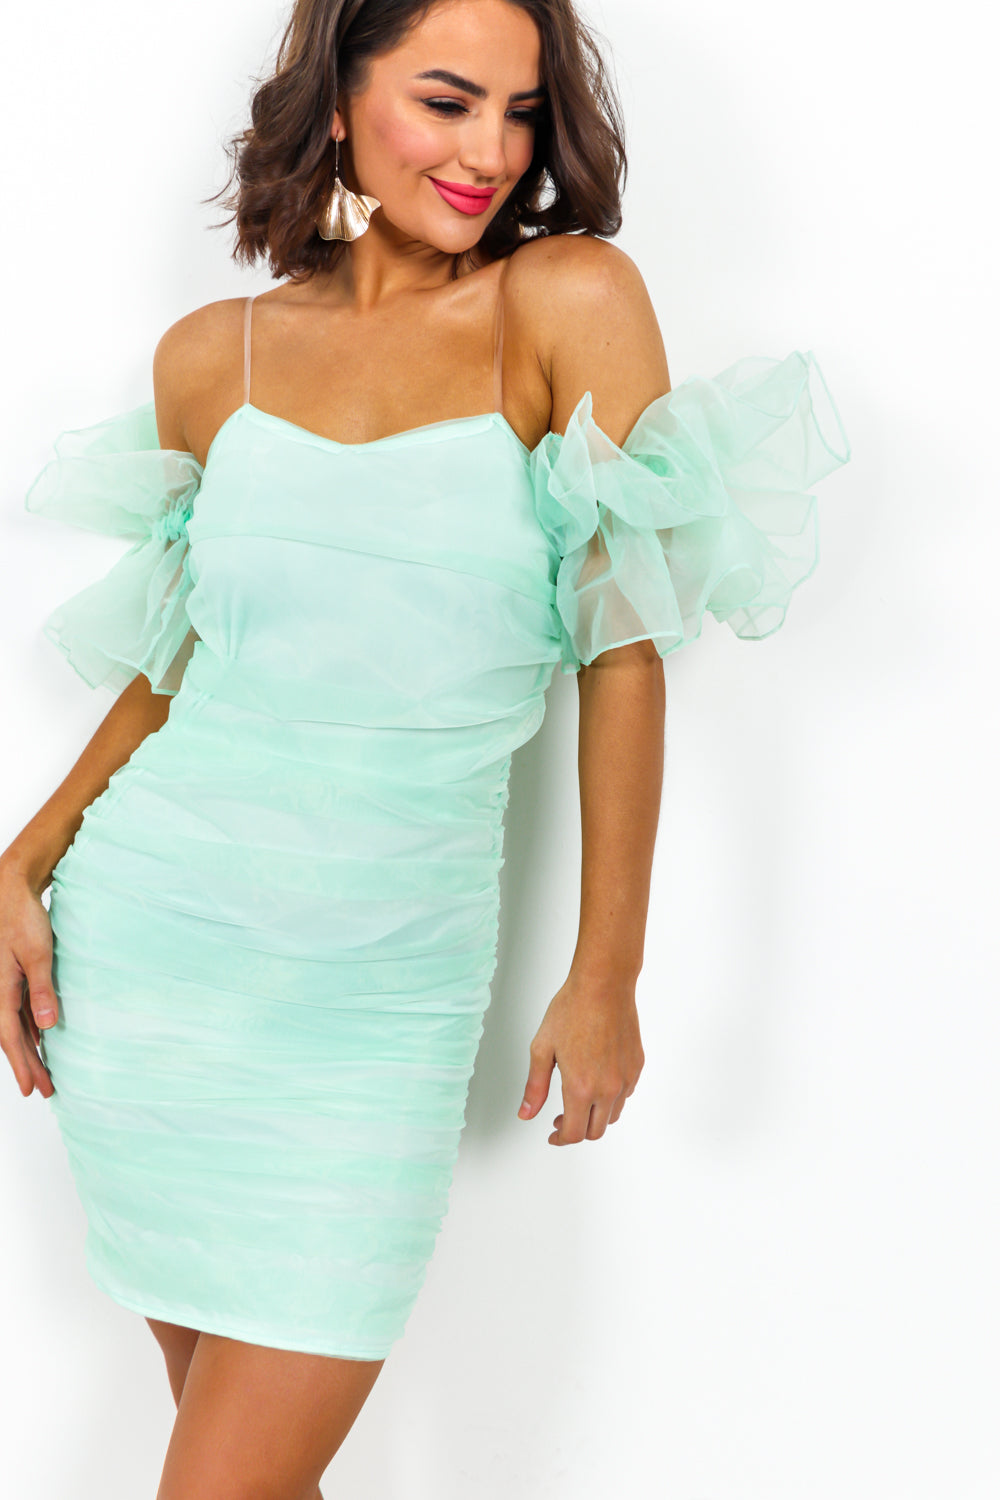 True Romance - Dress In MINT